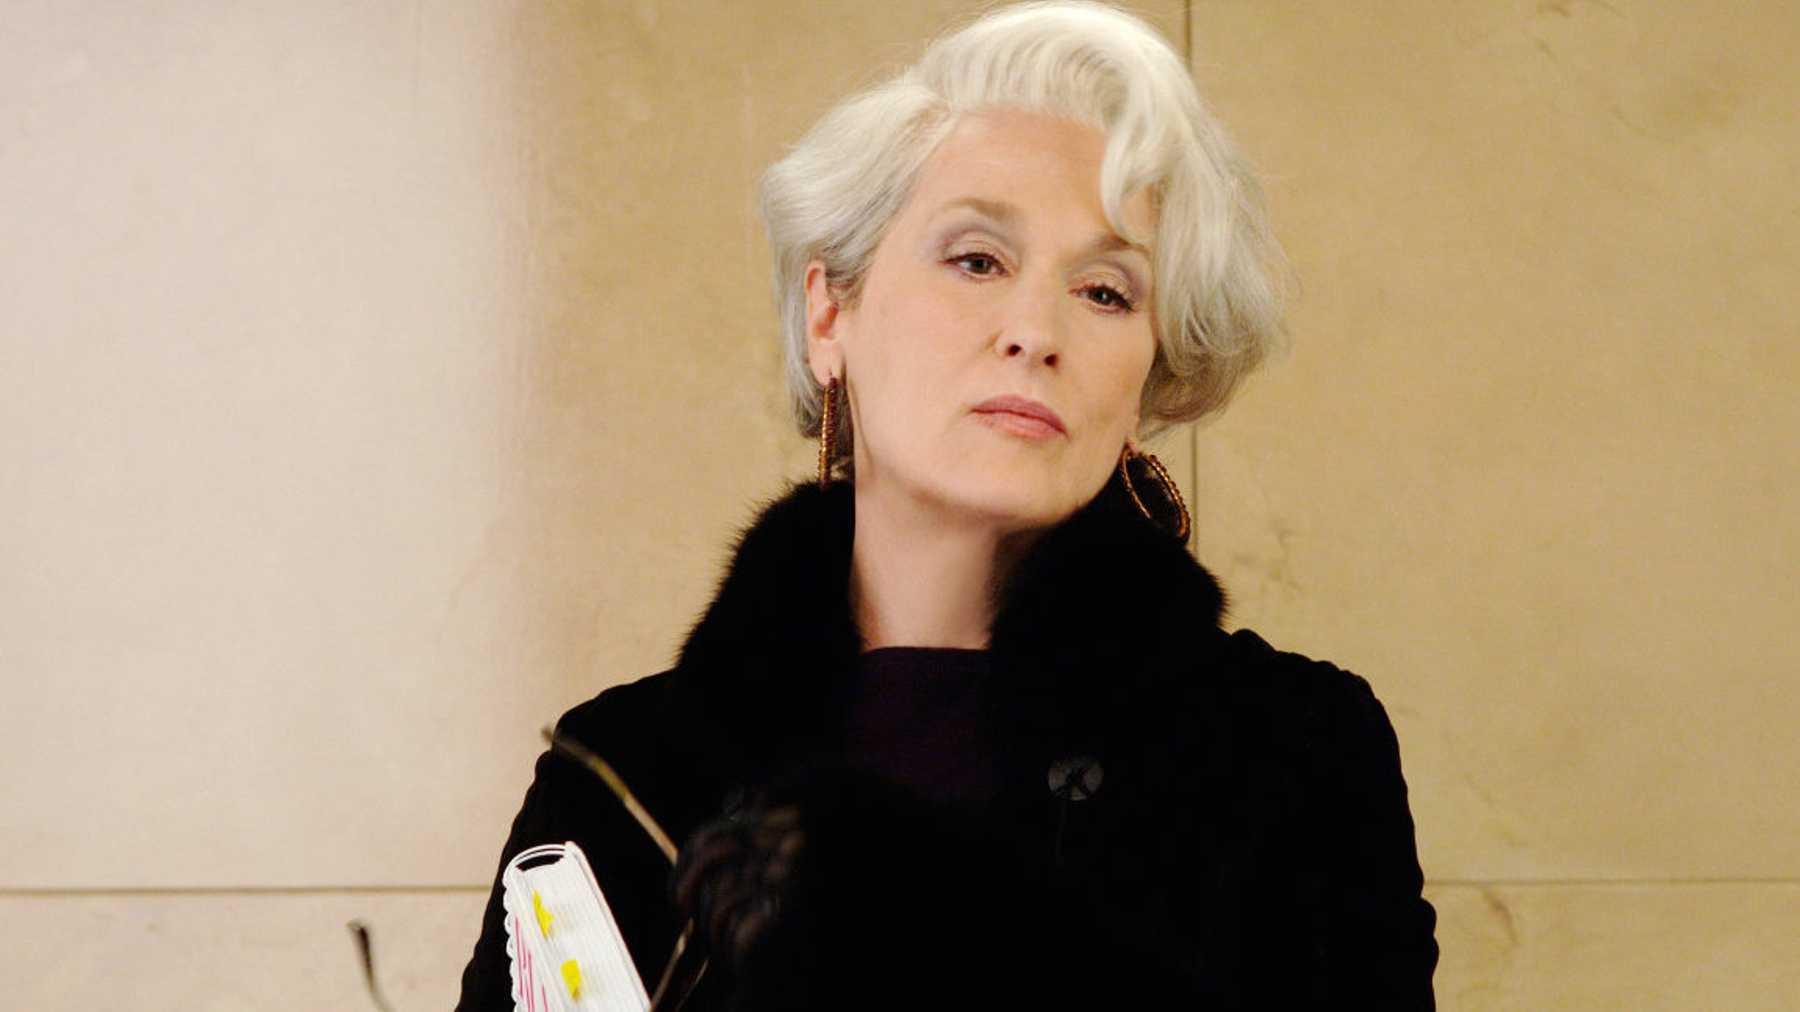 068dfc281770a The Devil Wears Prada Heads For The Stage | Movies | Empire